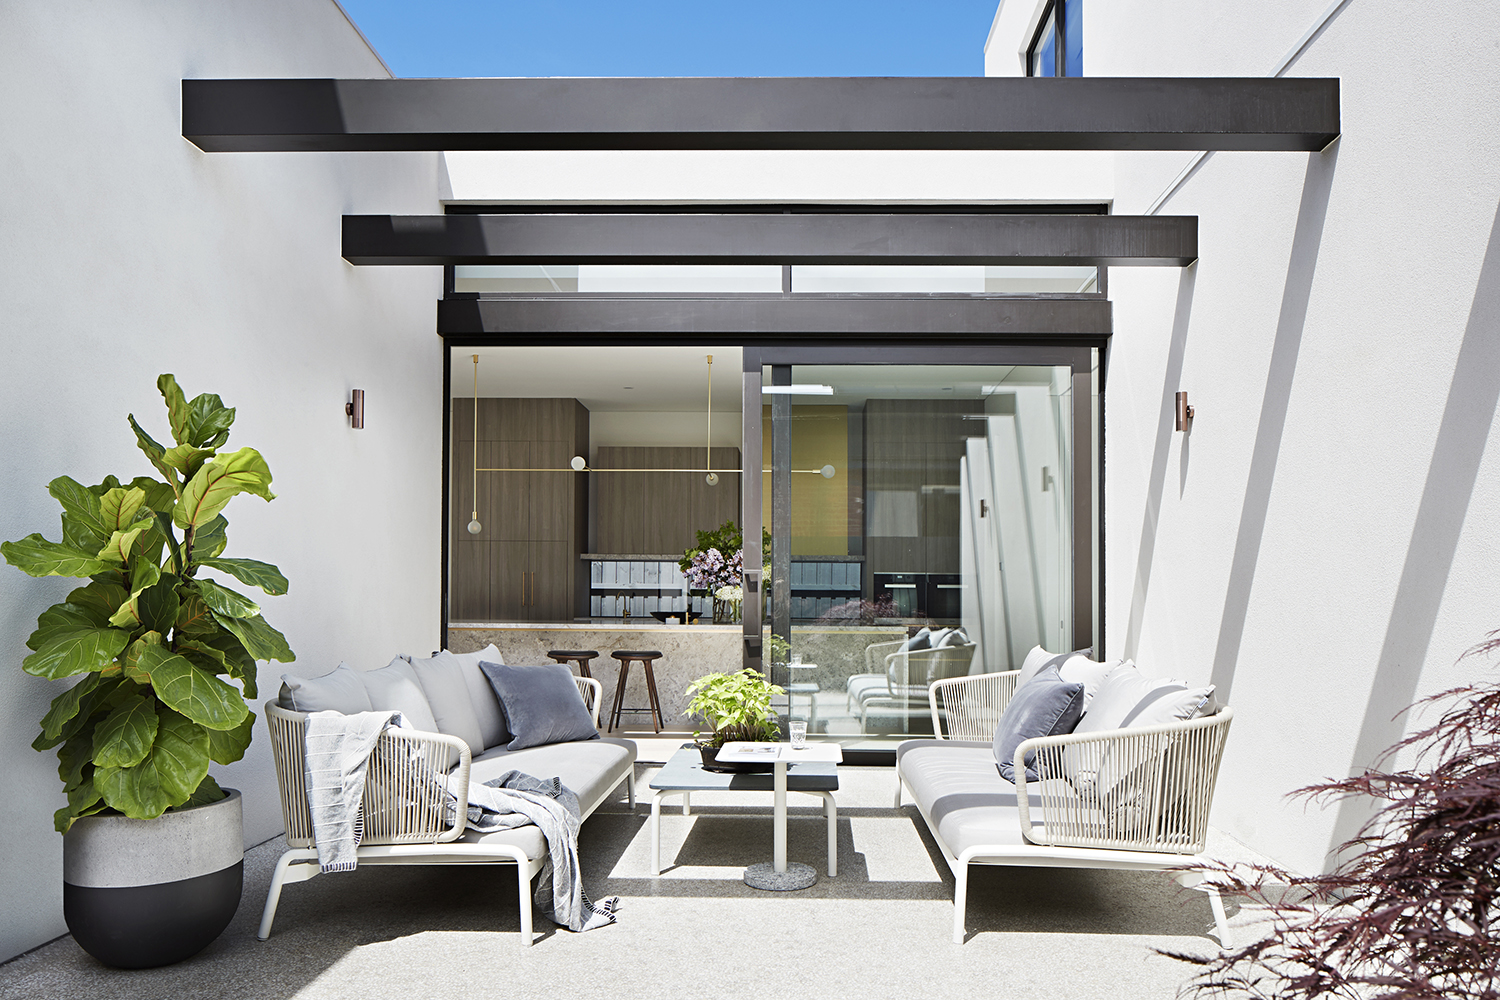 The Concrete Conceal House By Tecture Local Australian Design & Interiors Caulfield, Melbourne Image 9